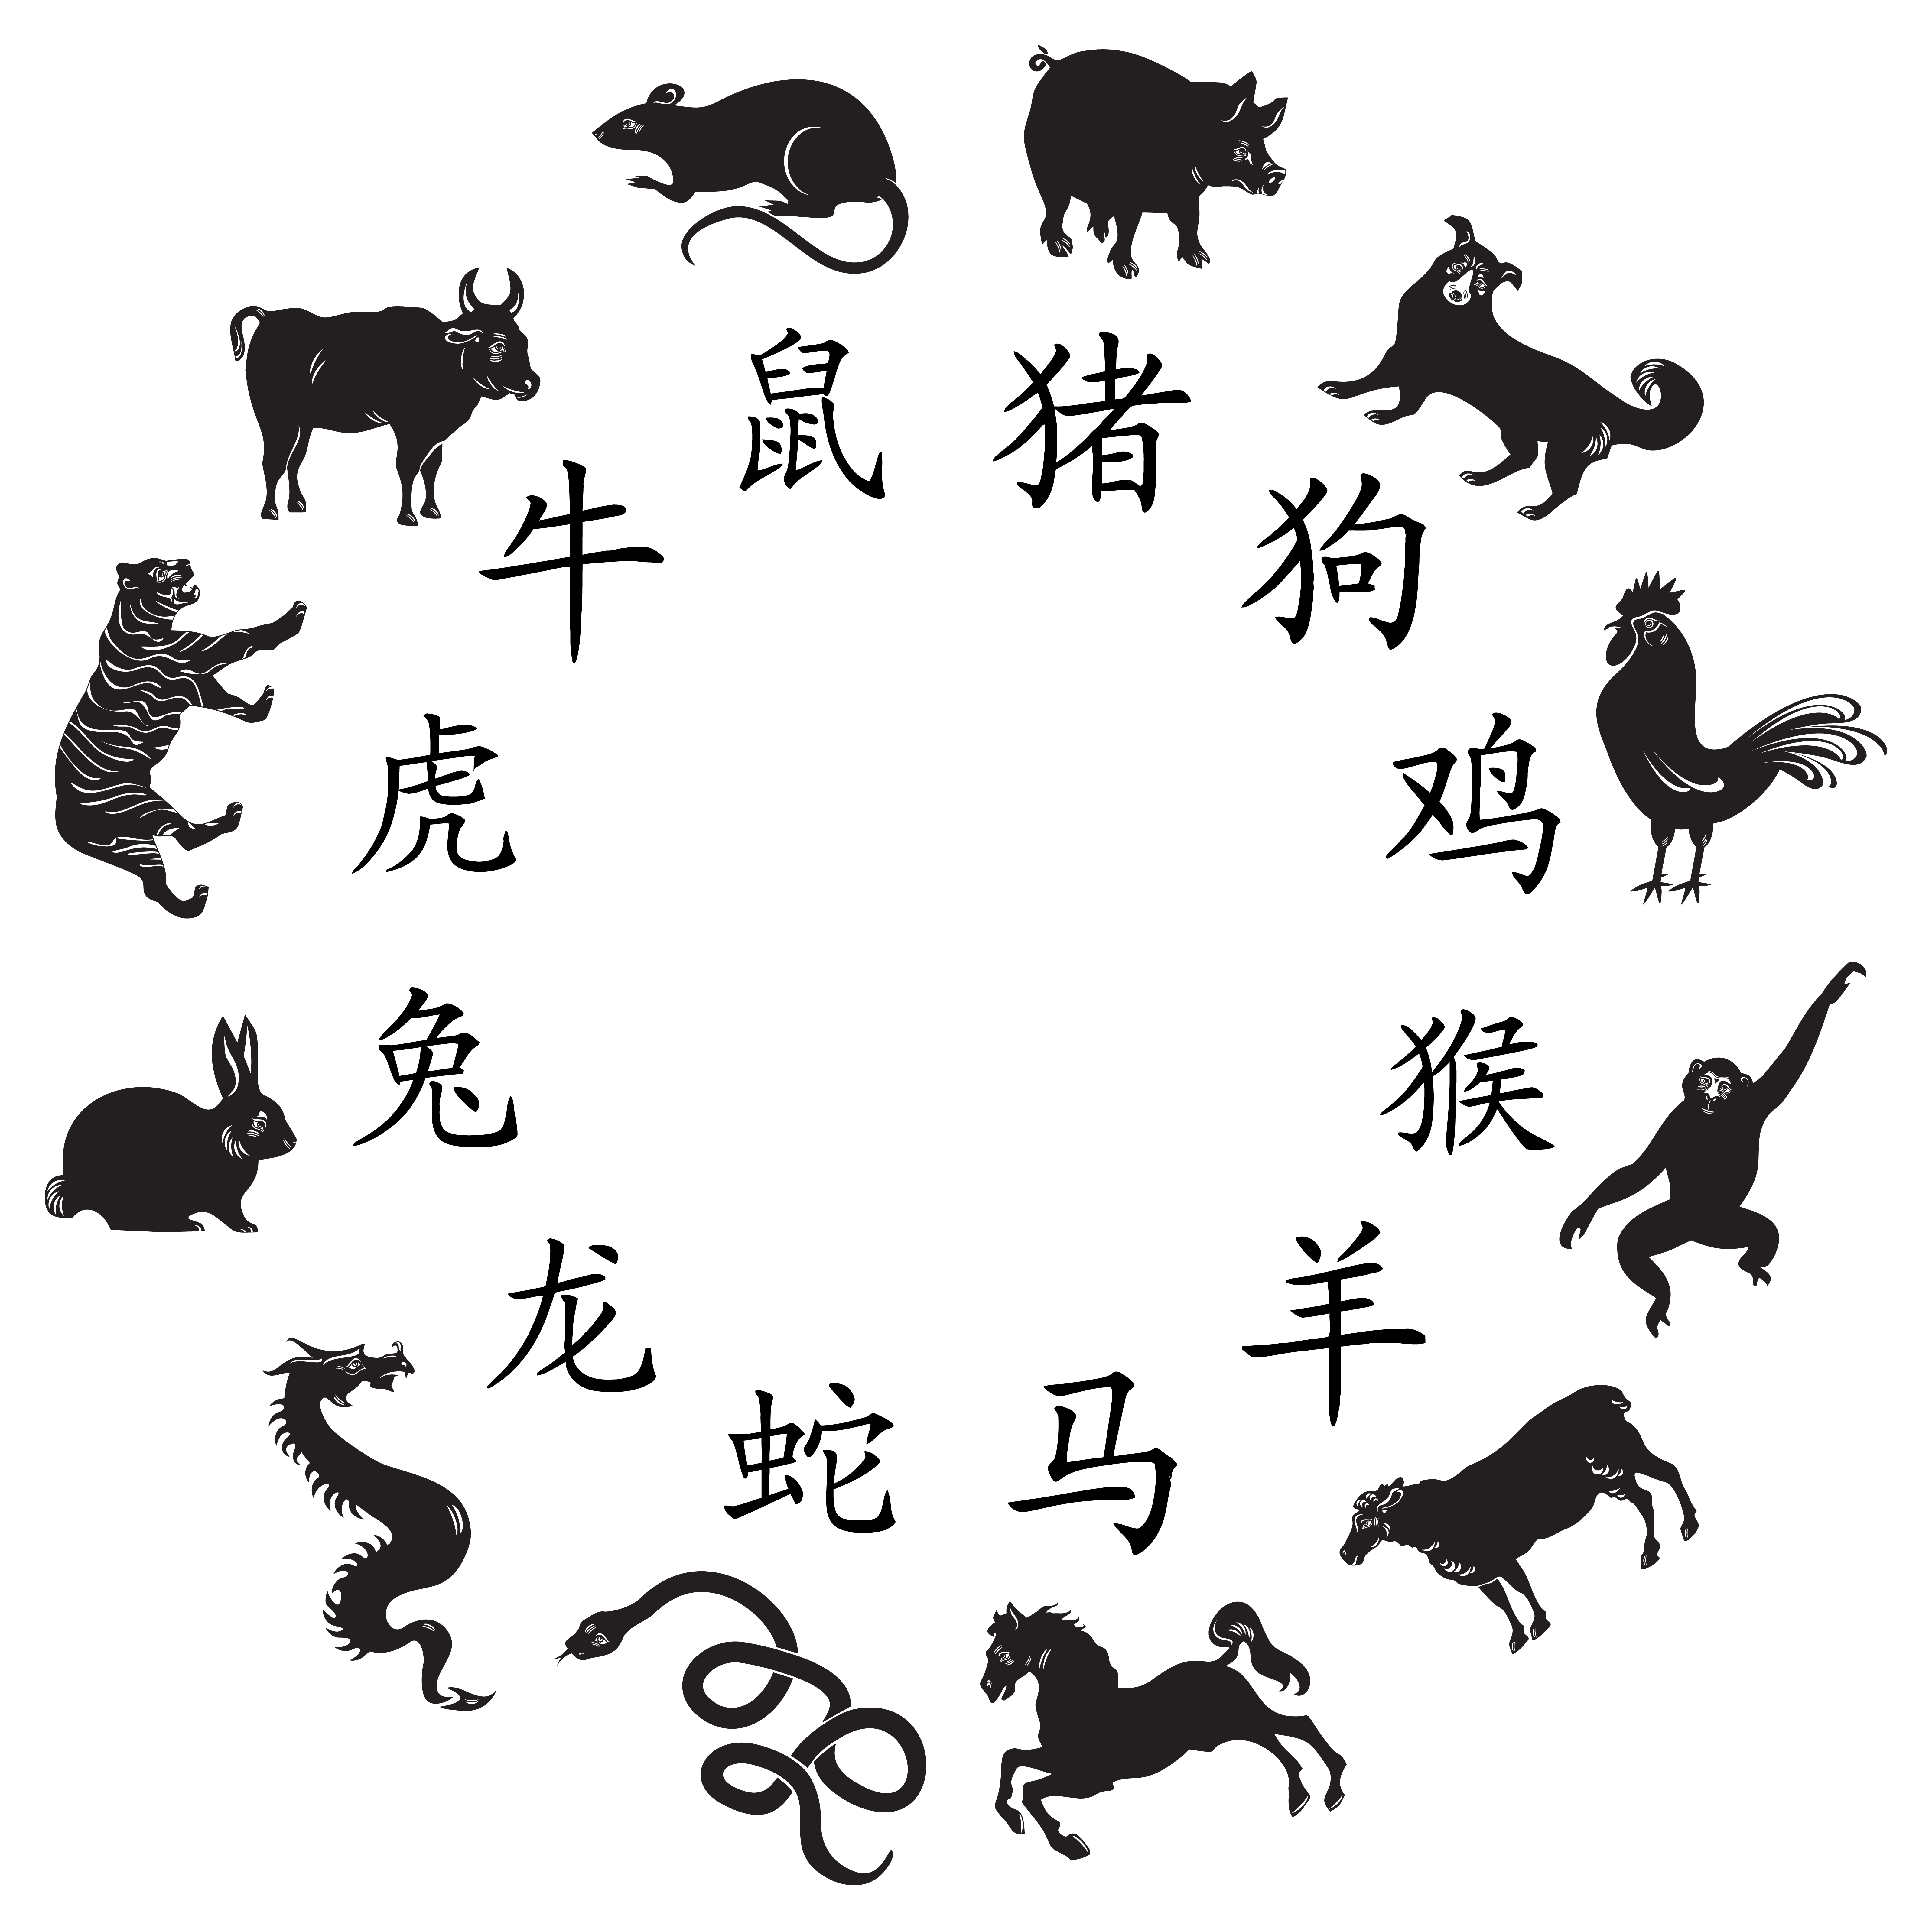 China transparent clipart. Chinese zodiac png image